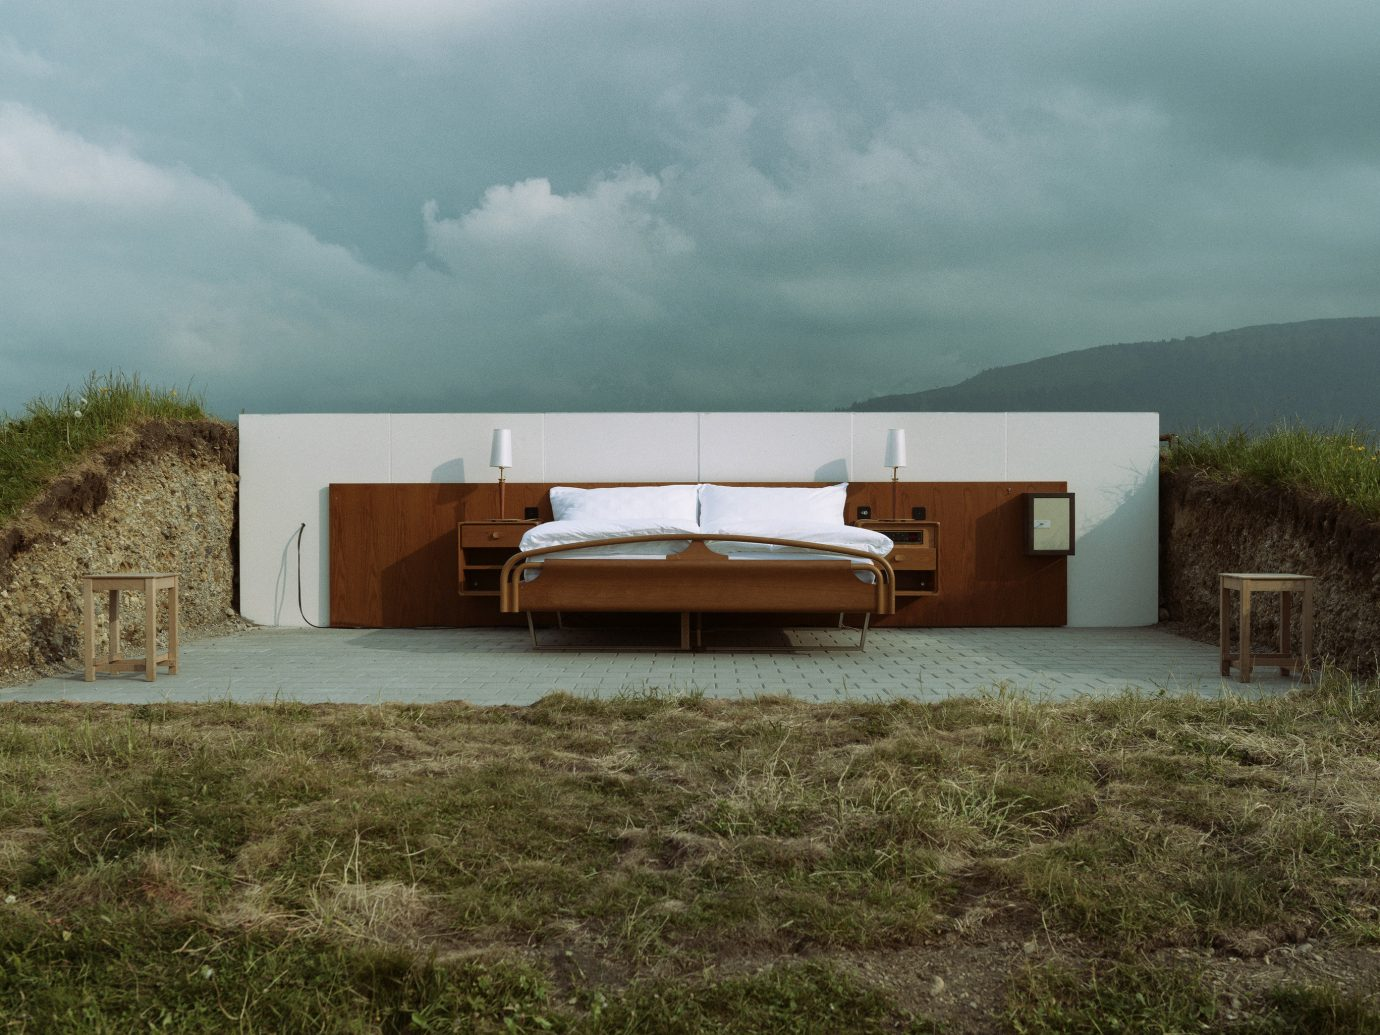 Hotels Offbeat grass sky outdoor Architecture house home landscape facade cloudy clouds